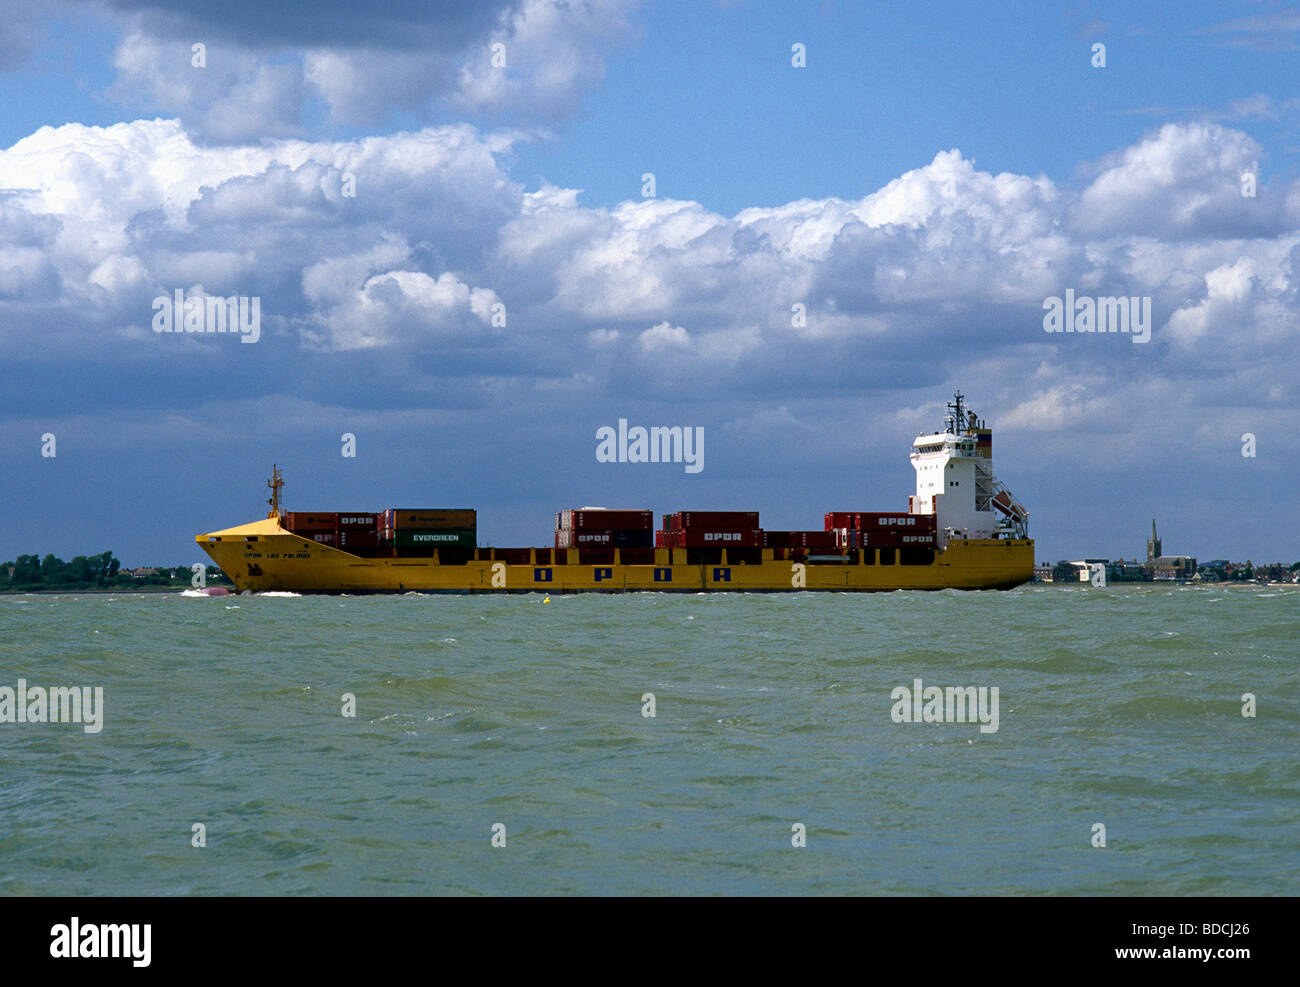 Small Container-ship River Orwell - Stock Image